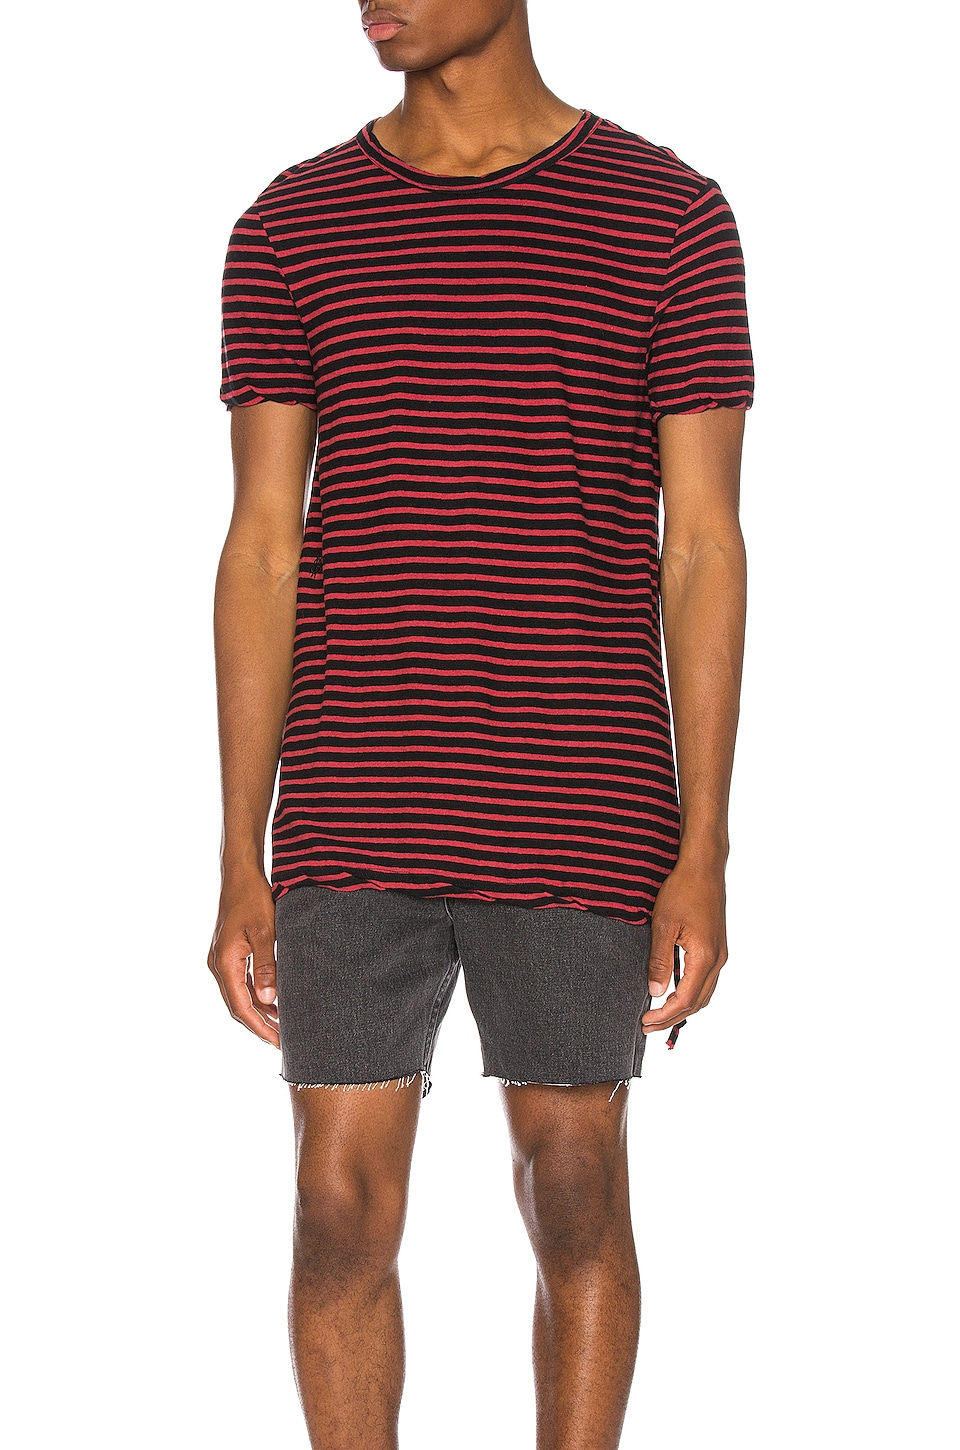 Ksubi Sinister Stripe Tee in Red